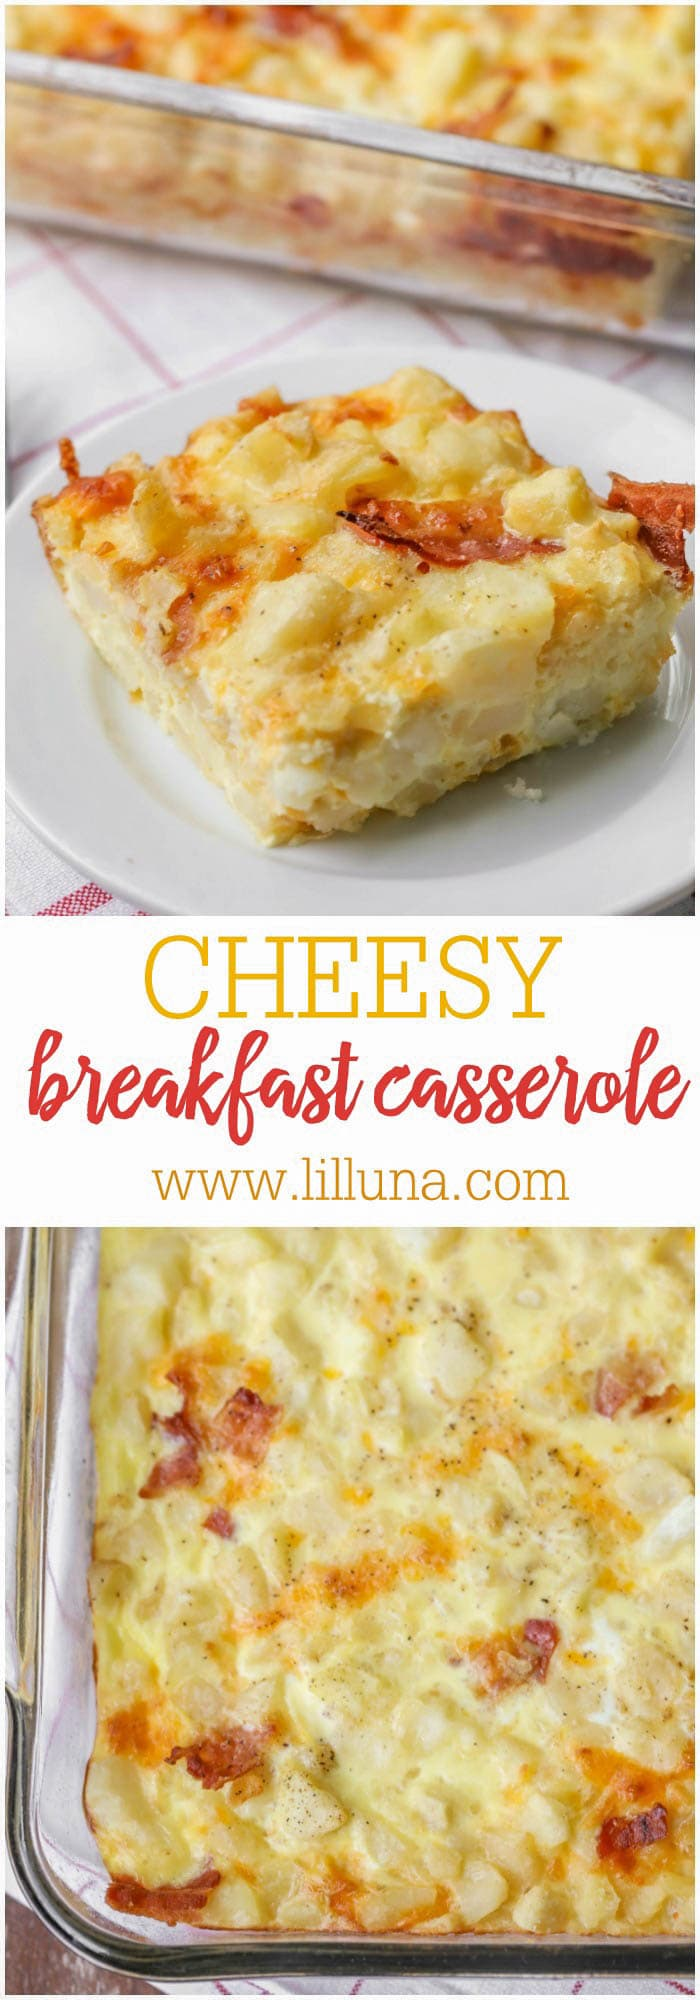 A quick and simple breakfast casserole filled with eggs, cheese, potatoes and bacon! Perfect for any morning.